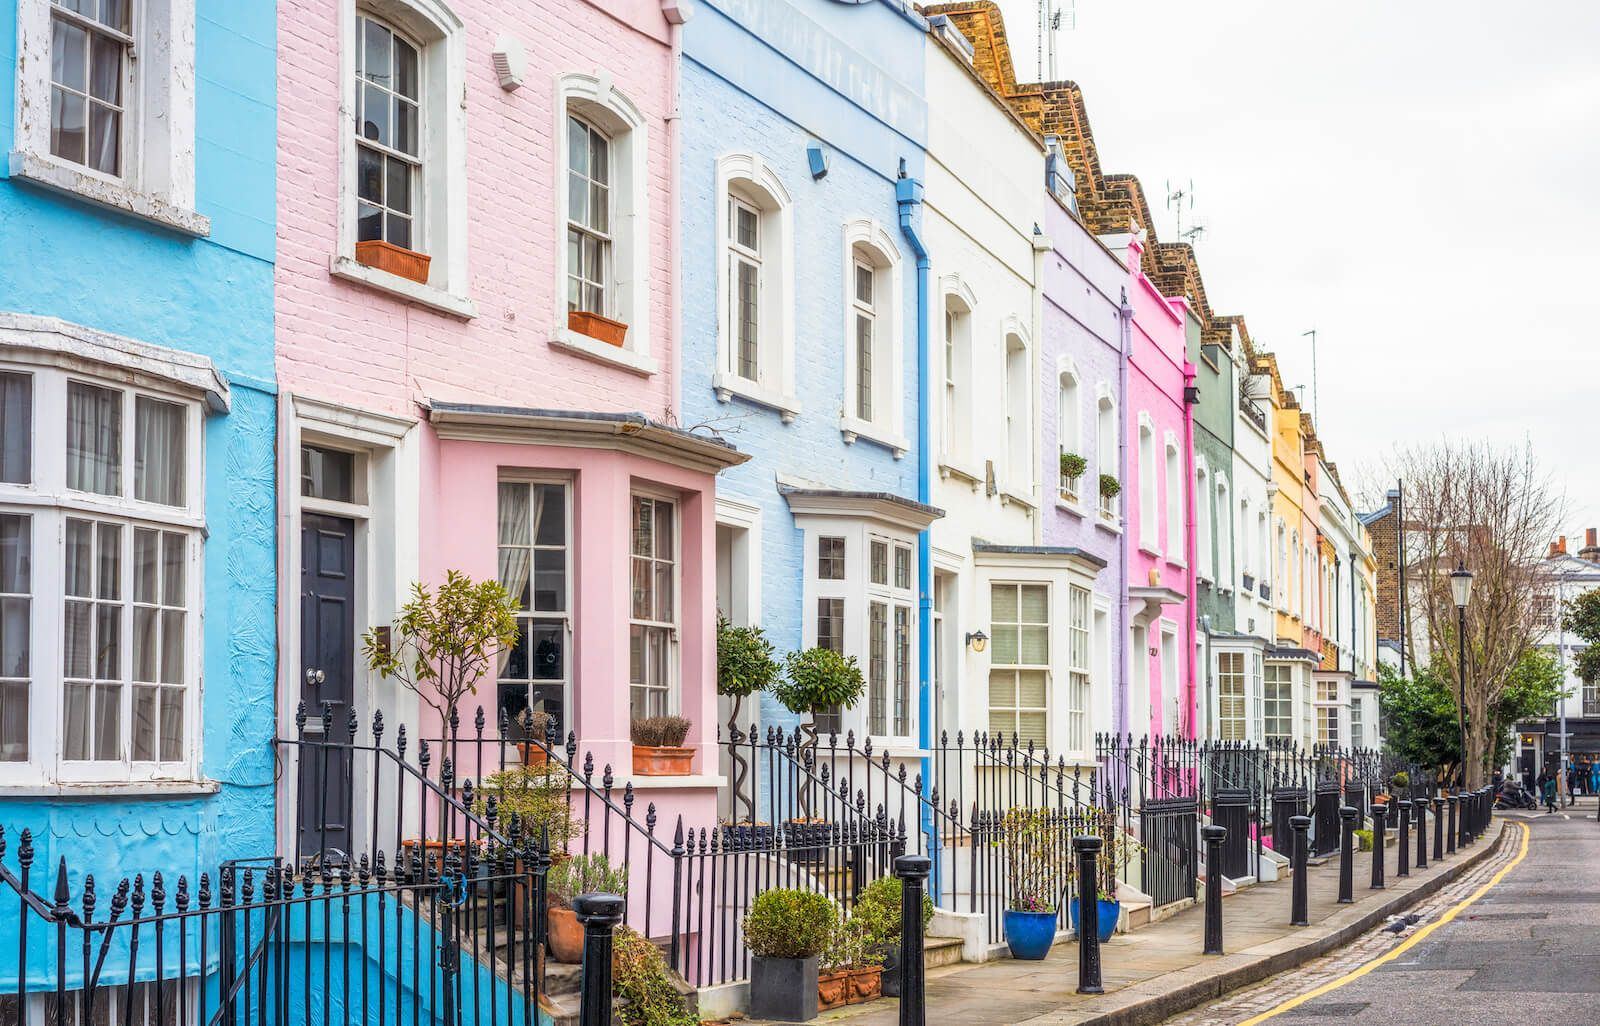 How Much is My House Worth? 3 Ways to Find Out